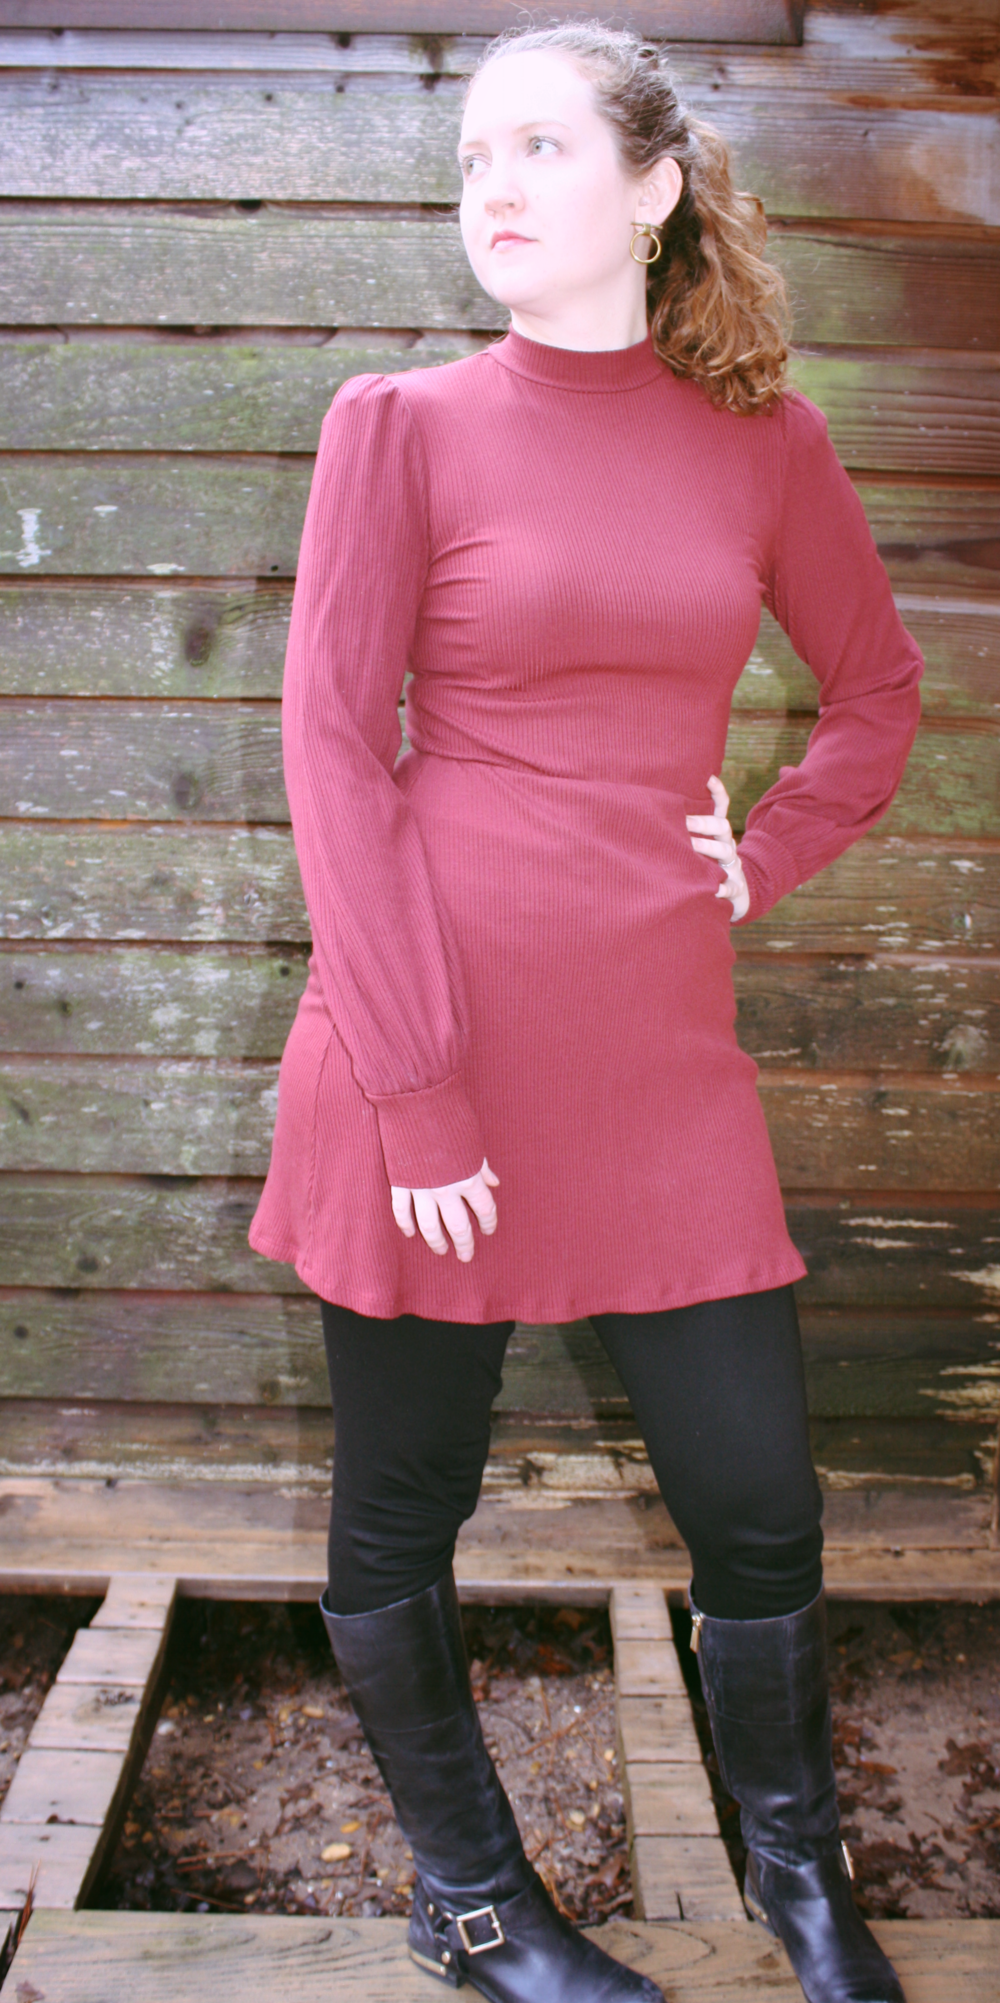 Dresses and trenches for rainy days Reformation dress Vince Camuto boots Soko earrings.png